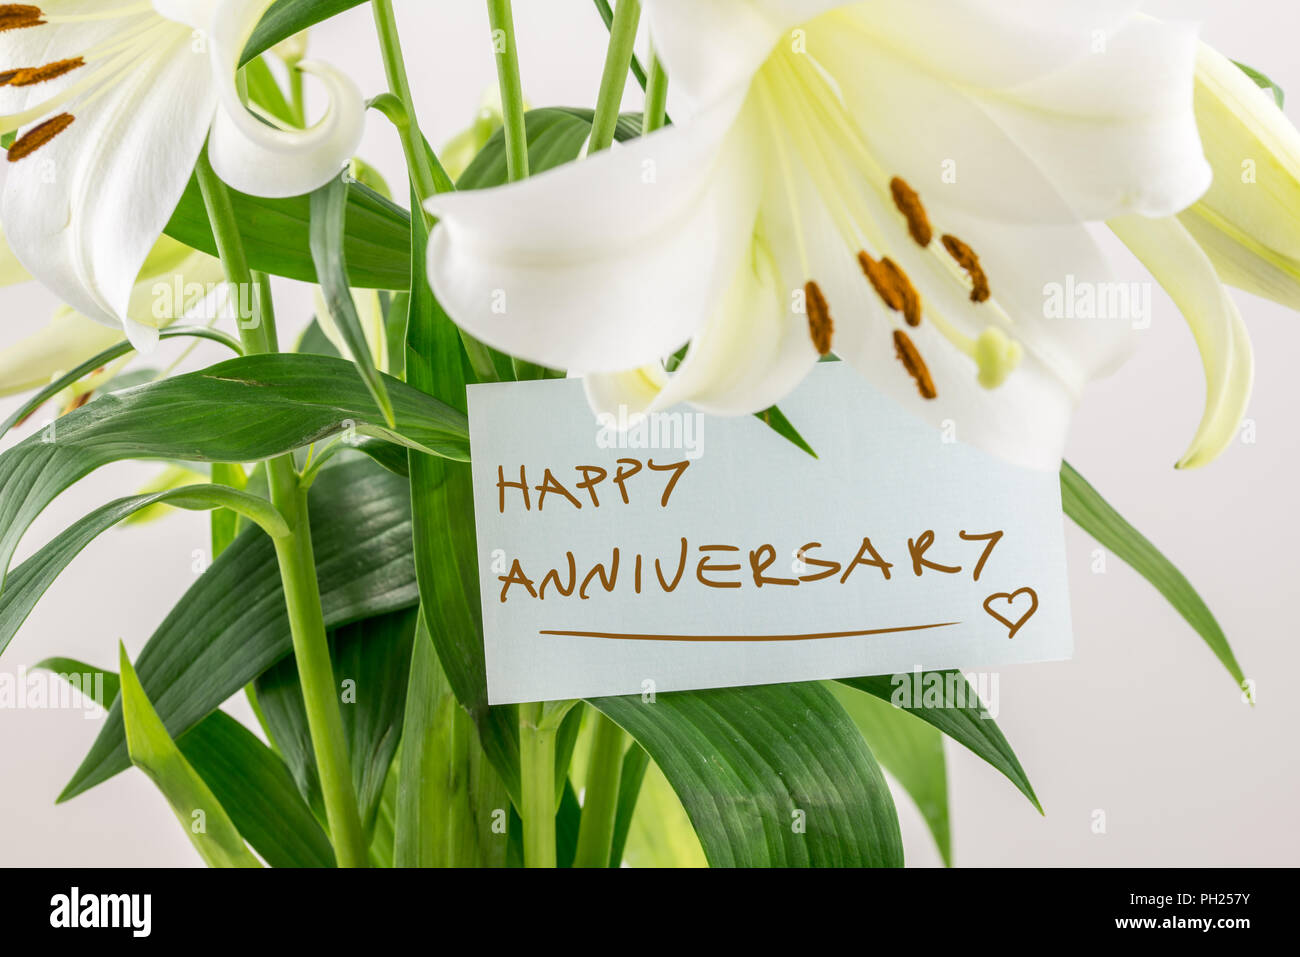 Happy anniversary floral gift of a bouquet of fresh white lilies with a hand-written note saying - Happy Anniversary - for a loved one or sweetheart. Stock Photo